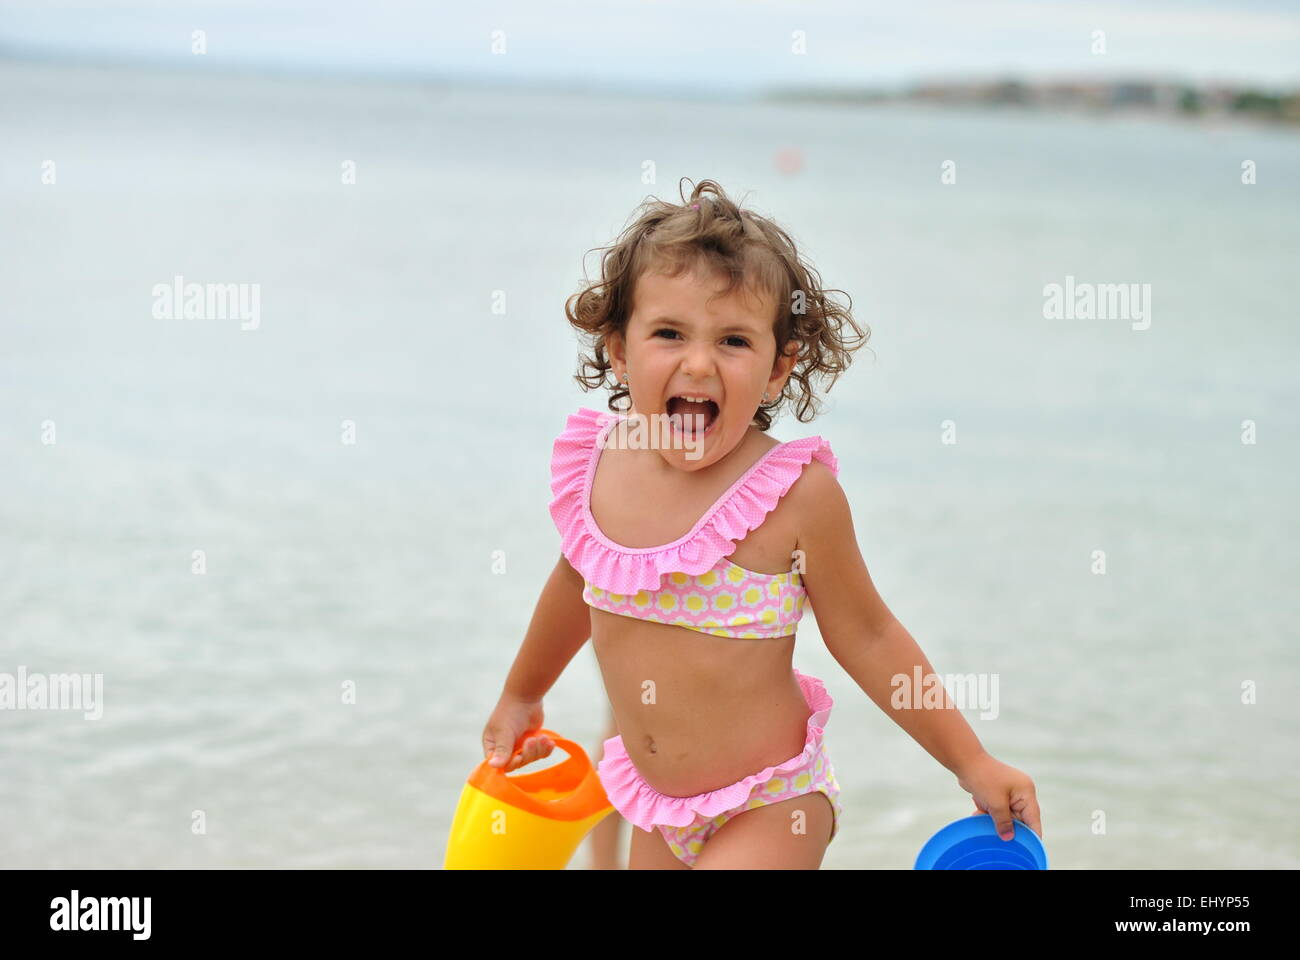 Girl in pink bikini playing on the beach Stock Photo